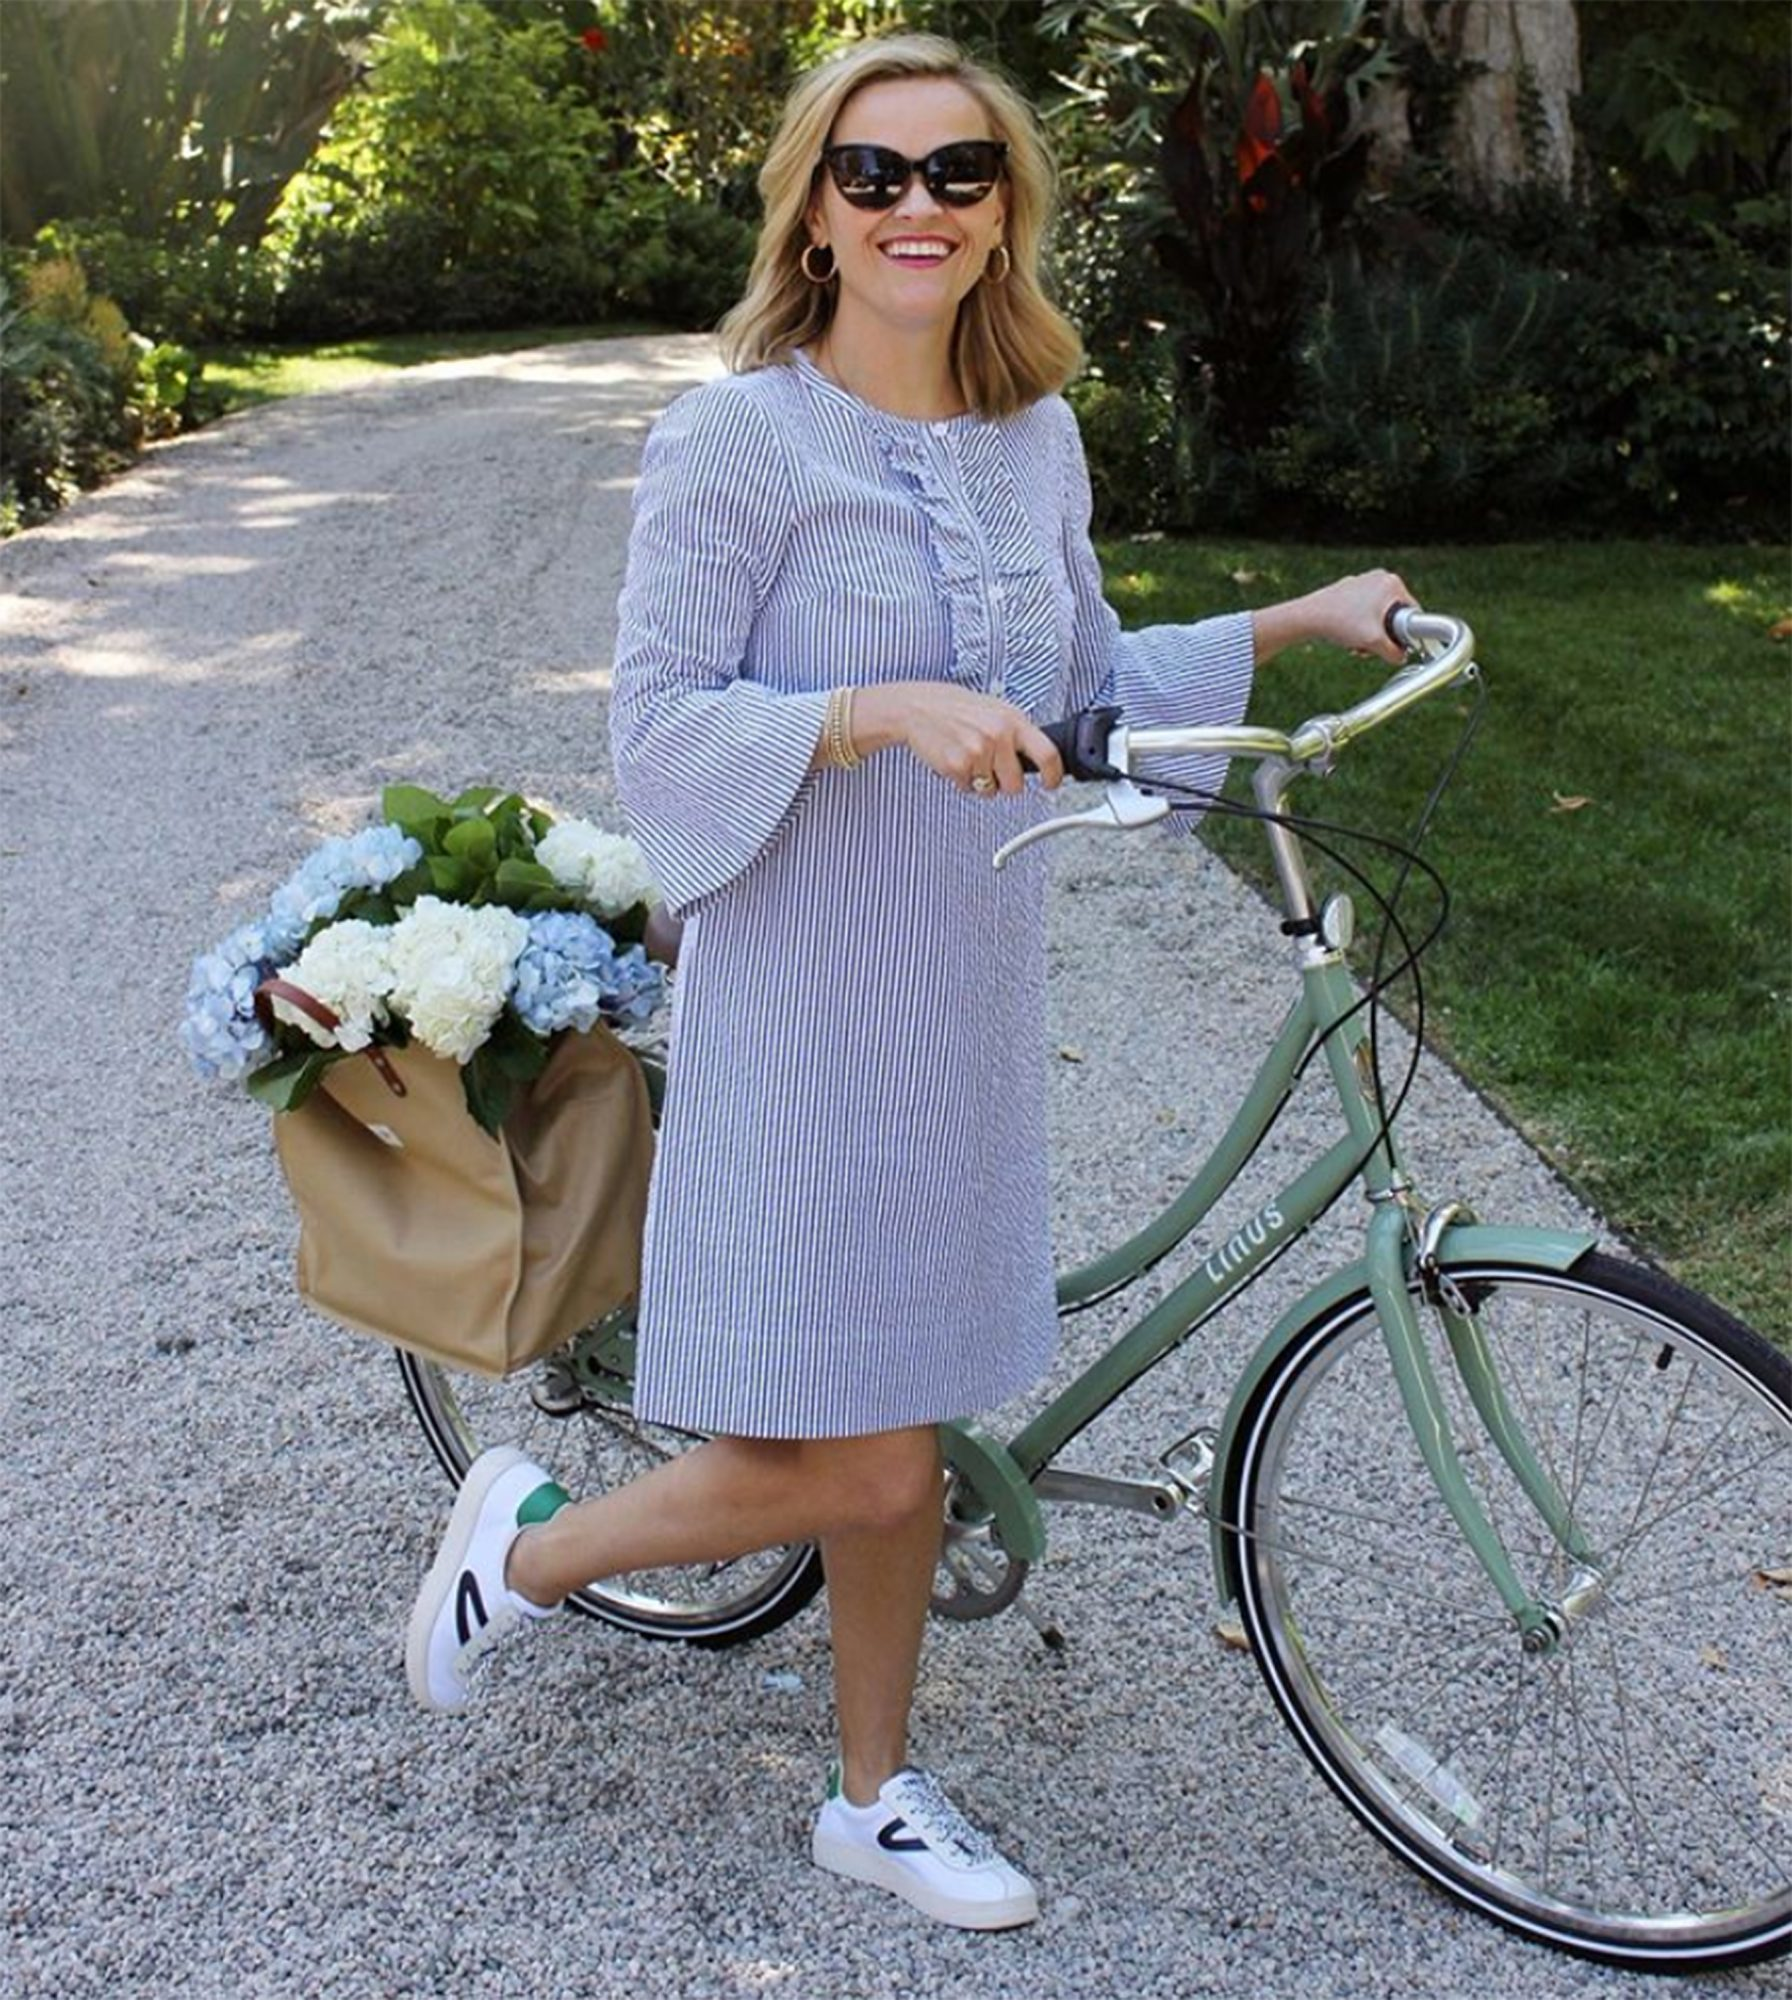 Reese Witherspoon sneakers